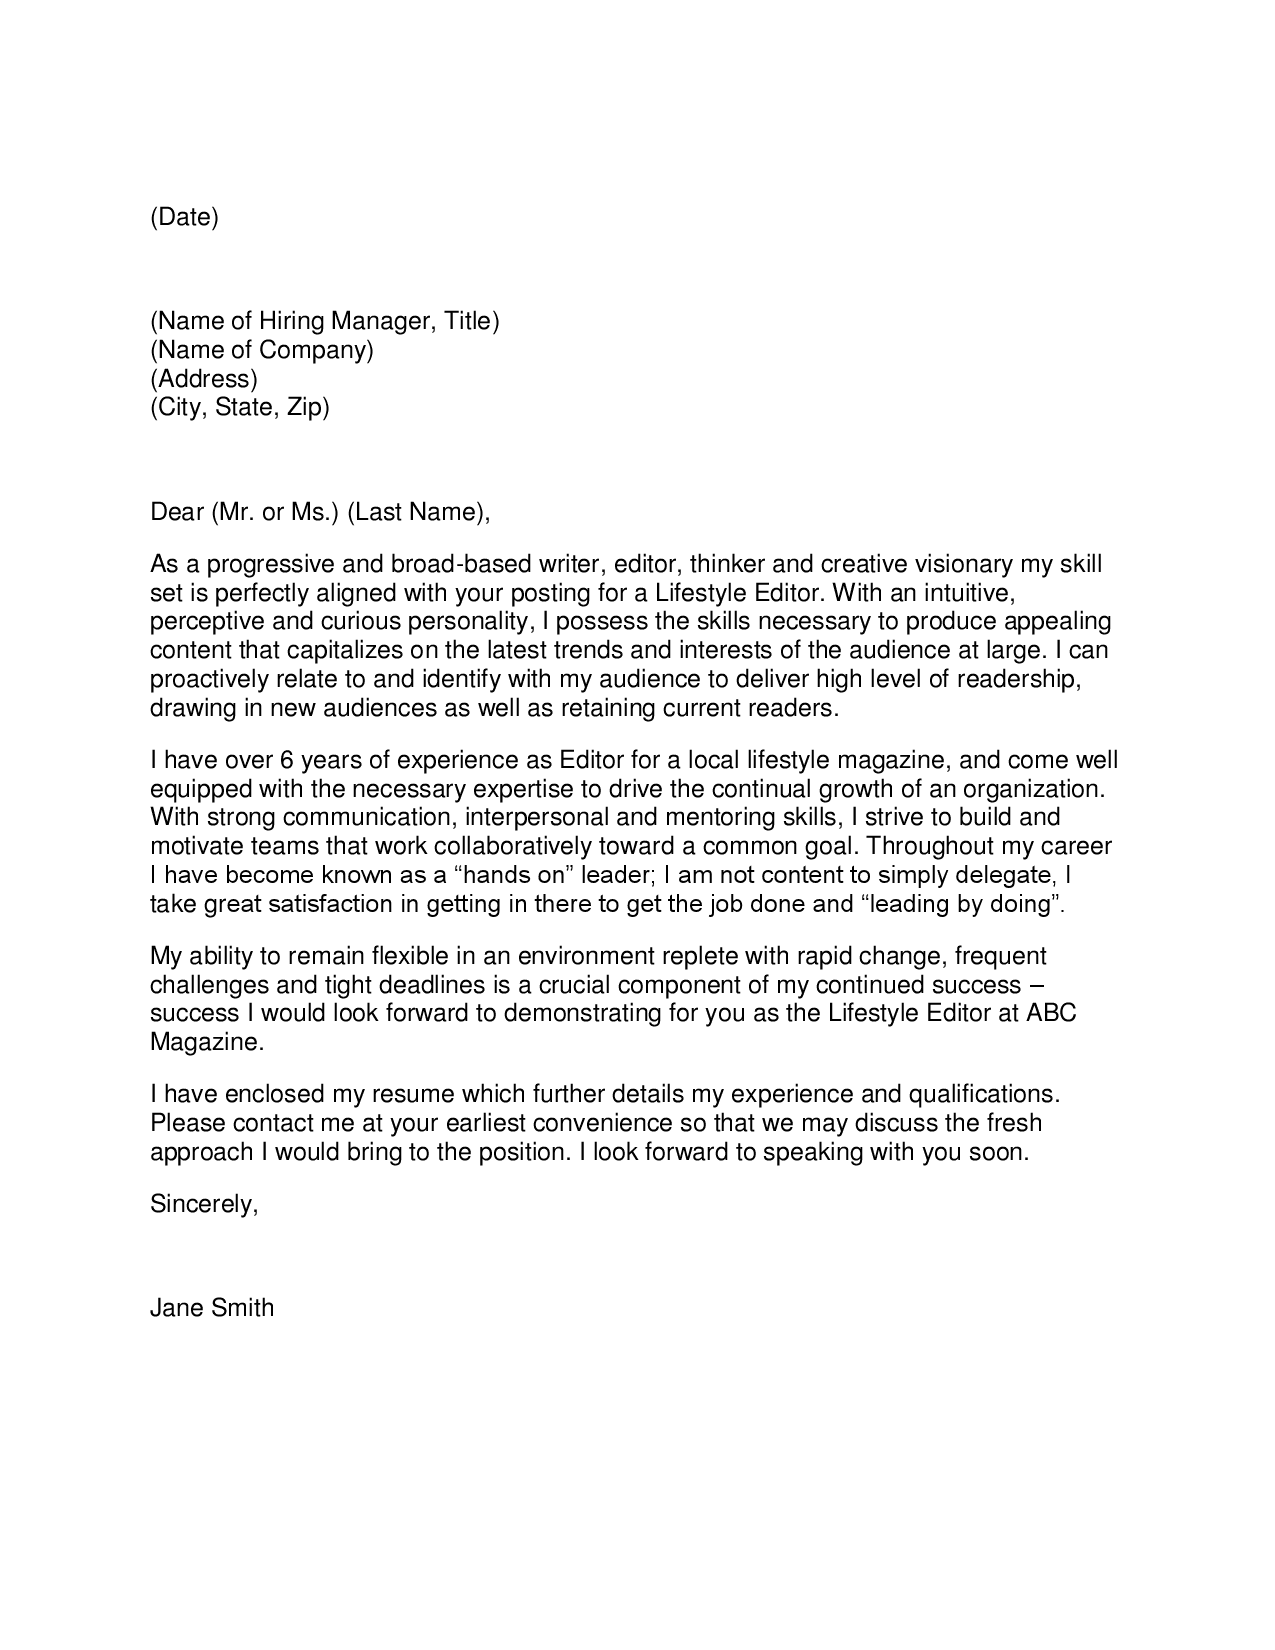 purdue cover letter advice purdue cover letter advice cover letter sample